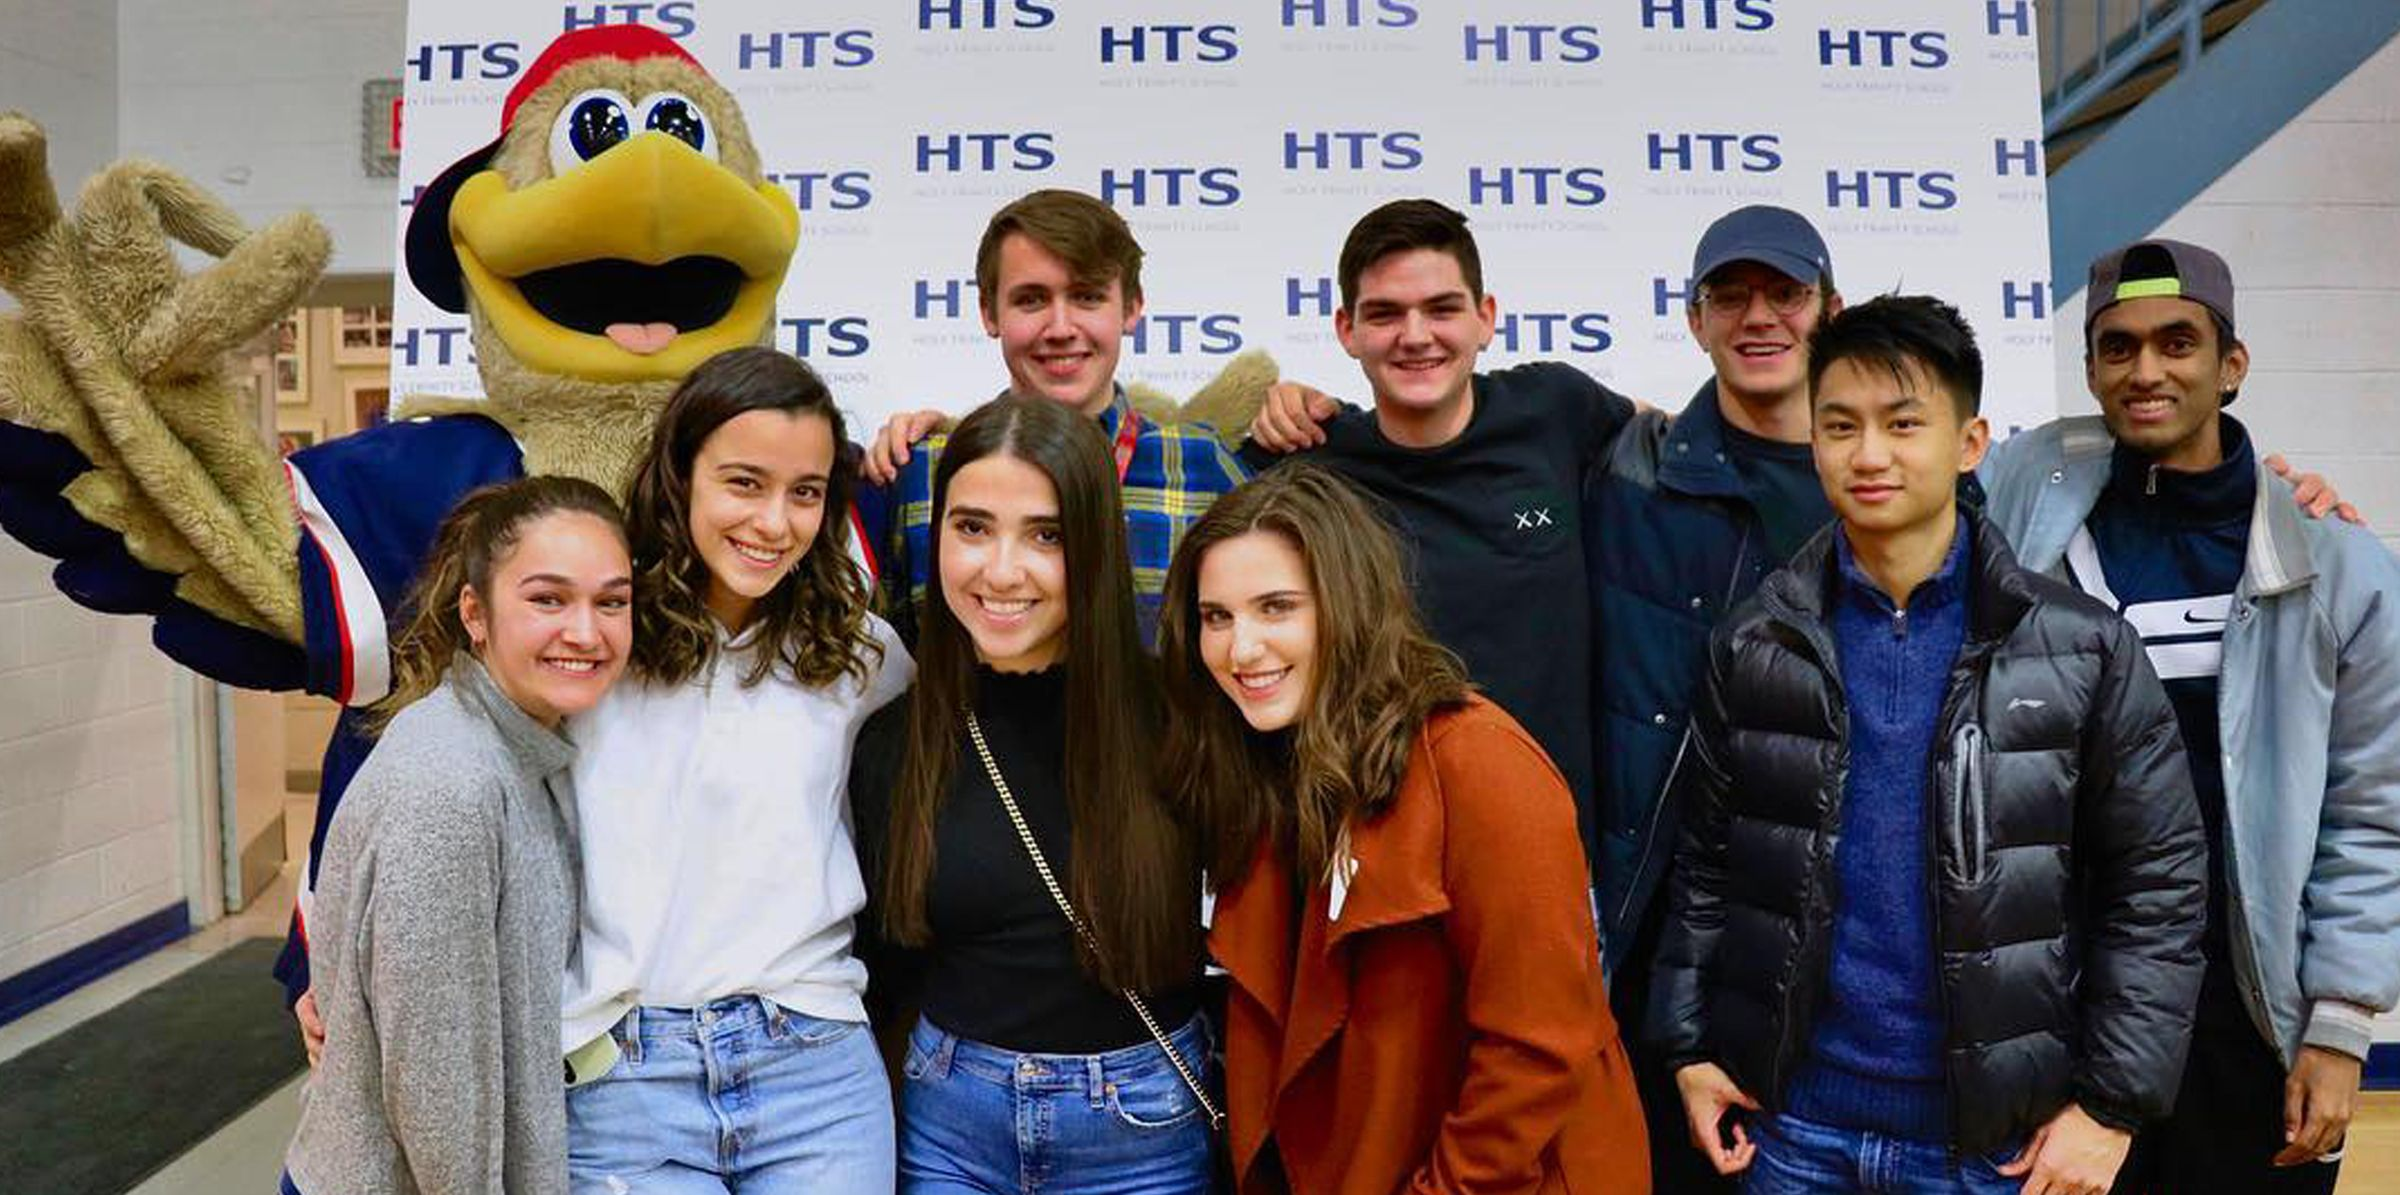 HTS Homecoming 2019